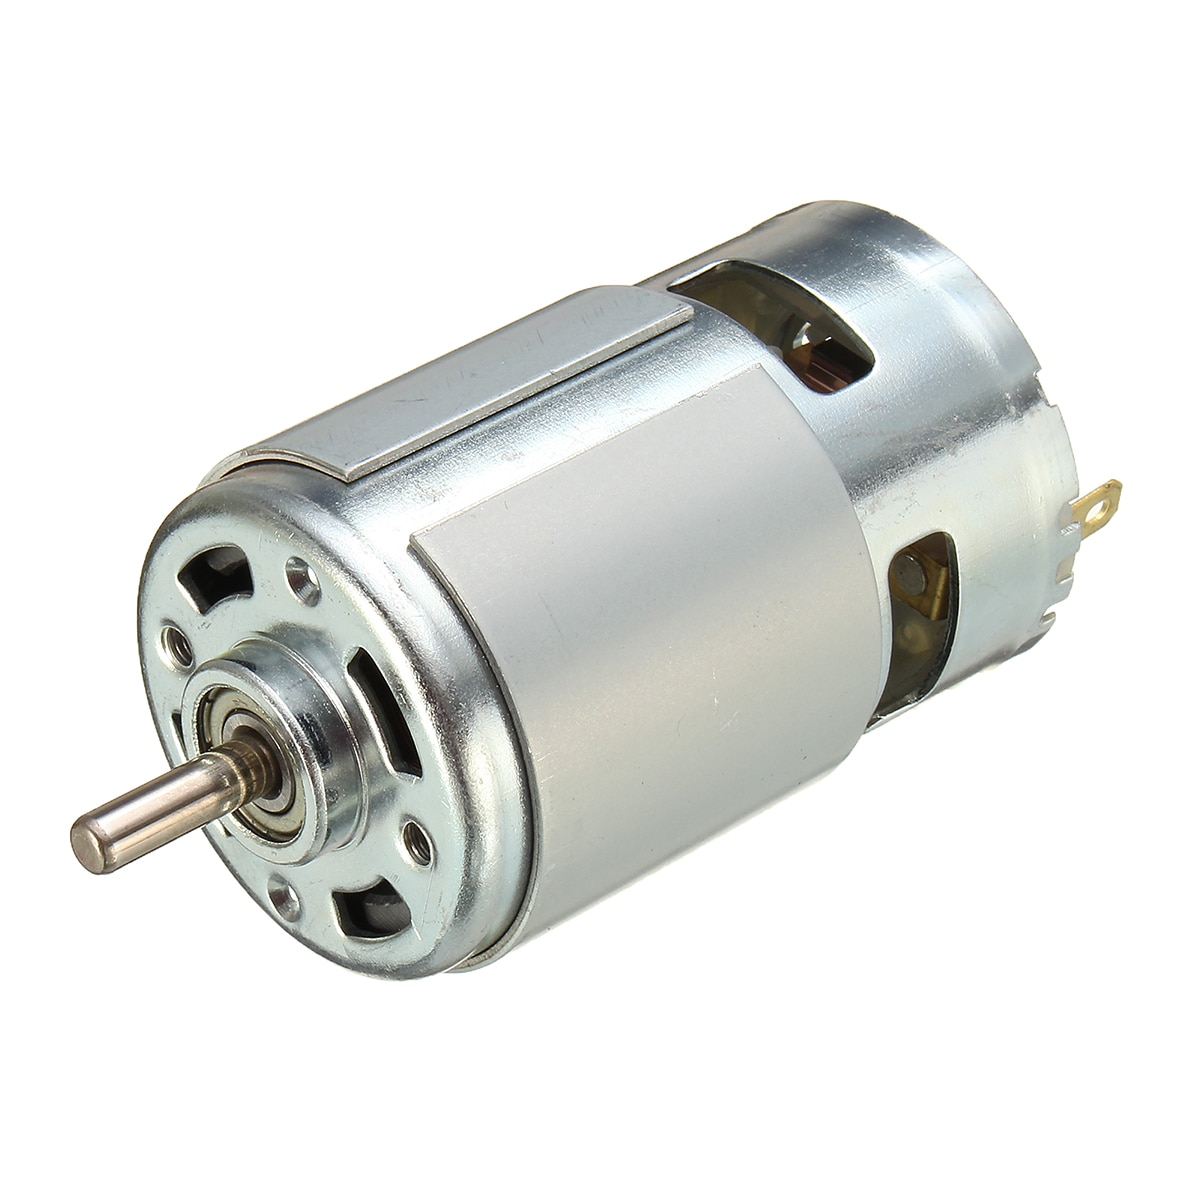 775 DC Motor DC 12V-36V 3500--9000 RPM Ball Bearing Large Torque High Power Low Noise Hot Sale Elect